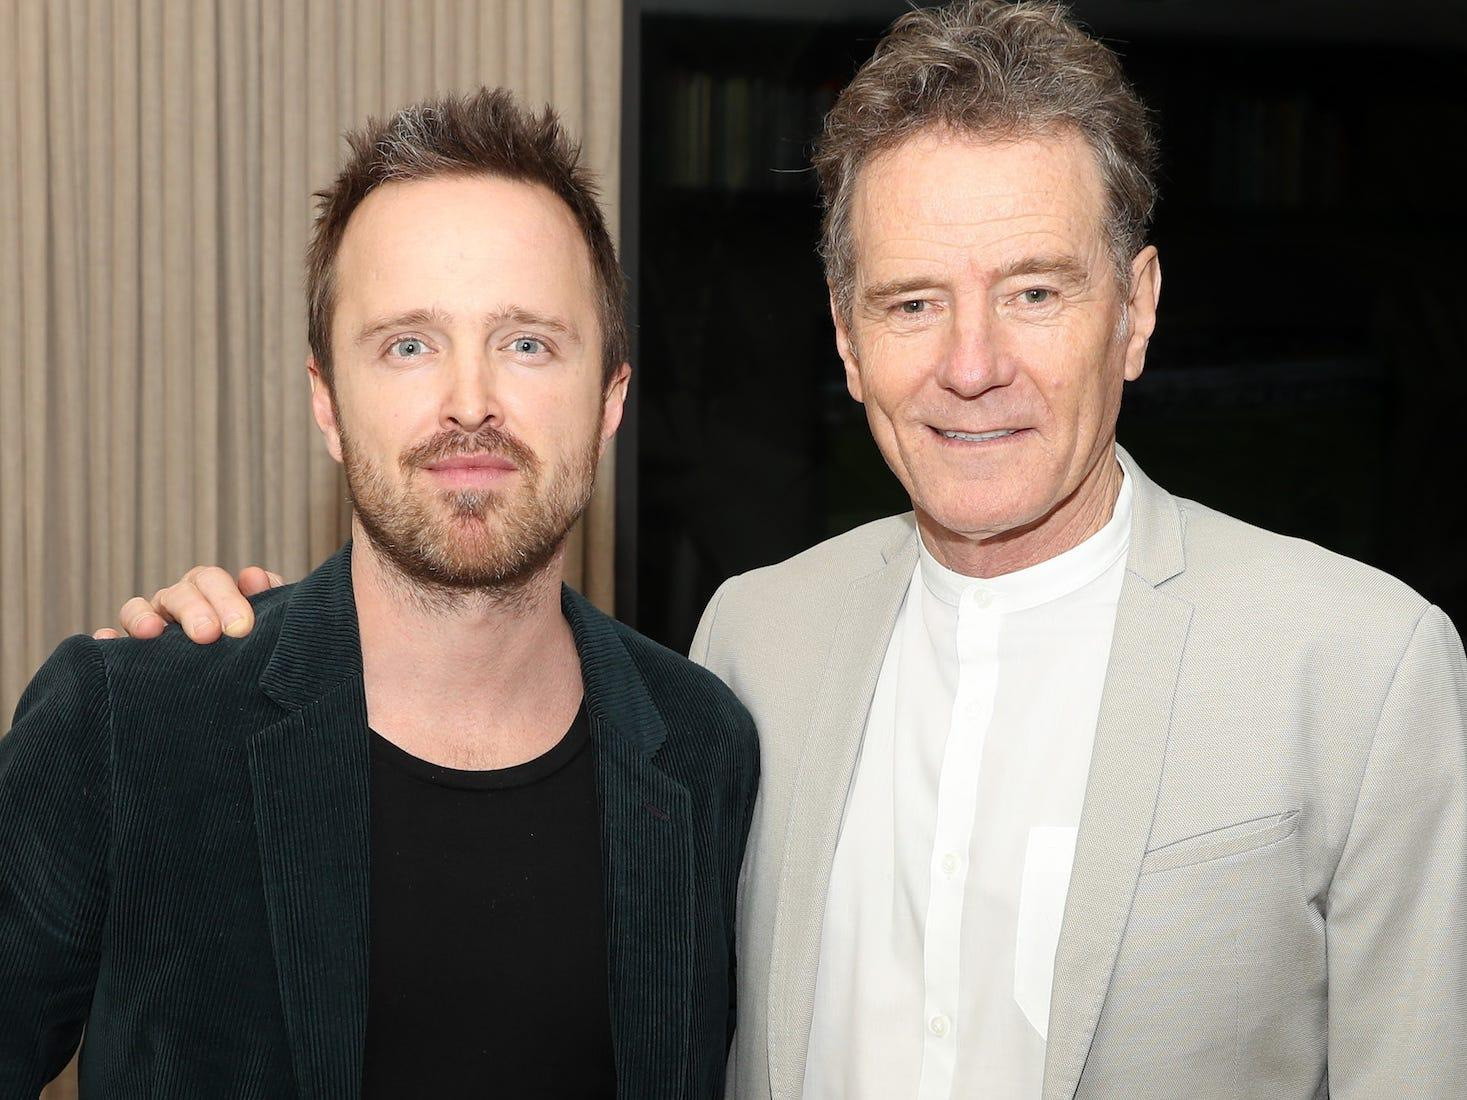 'Breaking Bad' costars Aaron Paul and Bryan Cranston are donating profits from their alcohol brand to out-of-work bartenders